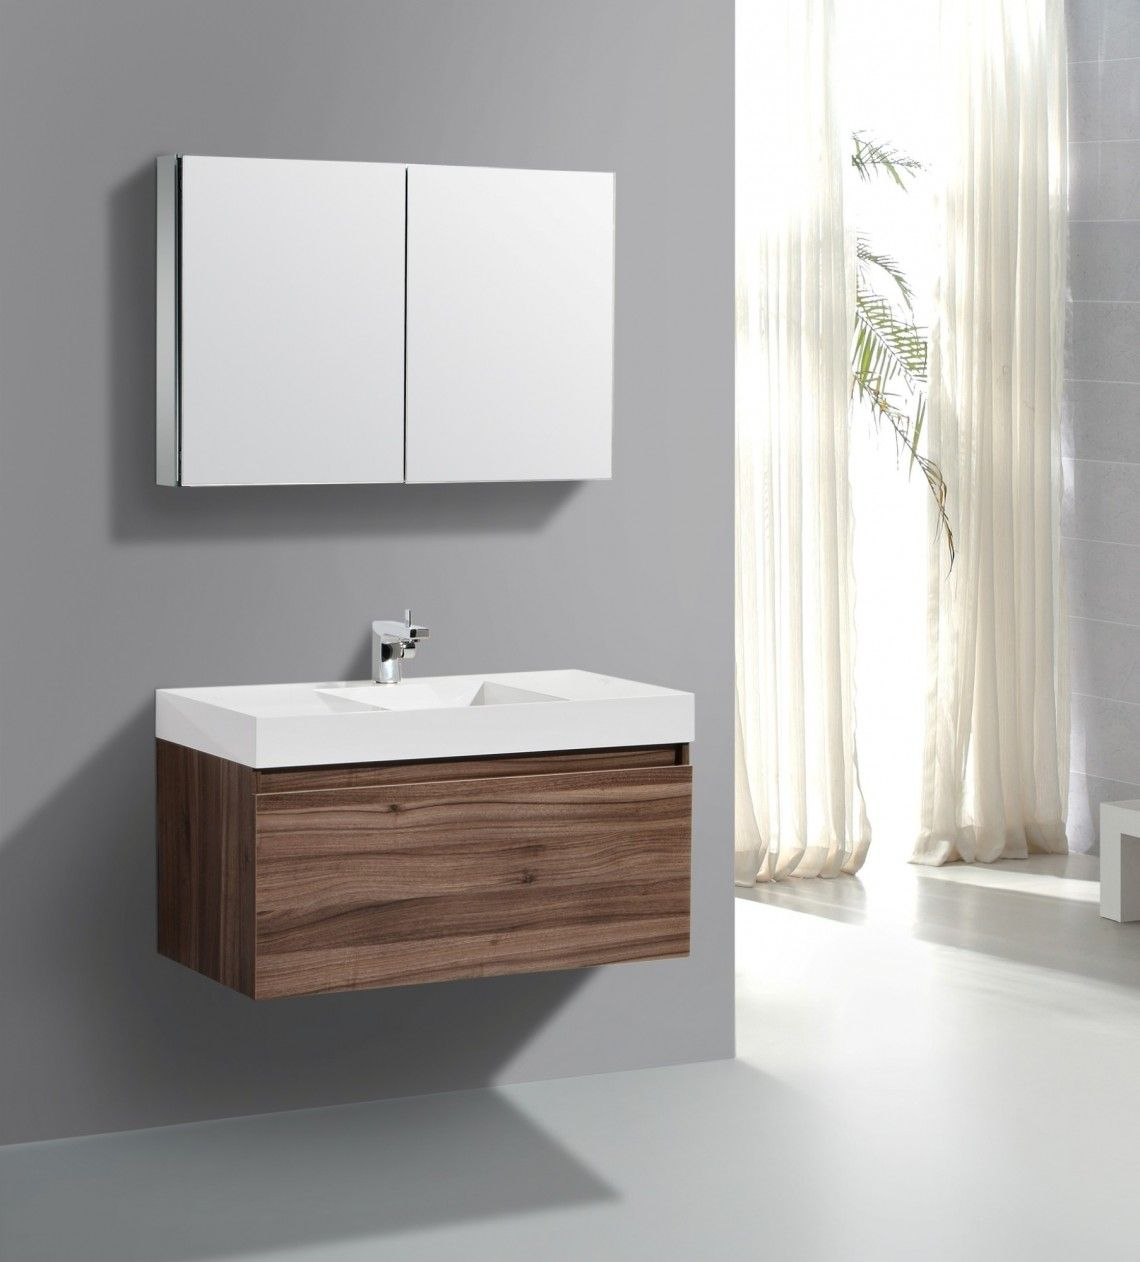 Furniture Enchantg Wall Mounted Bathroom Mirror with Modern